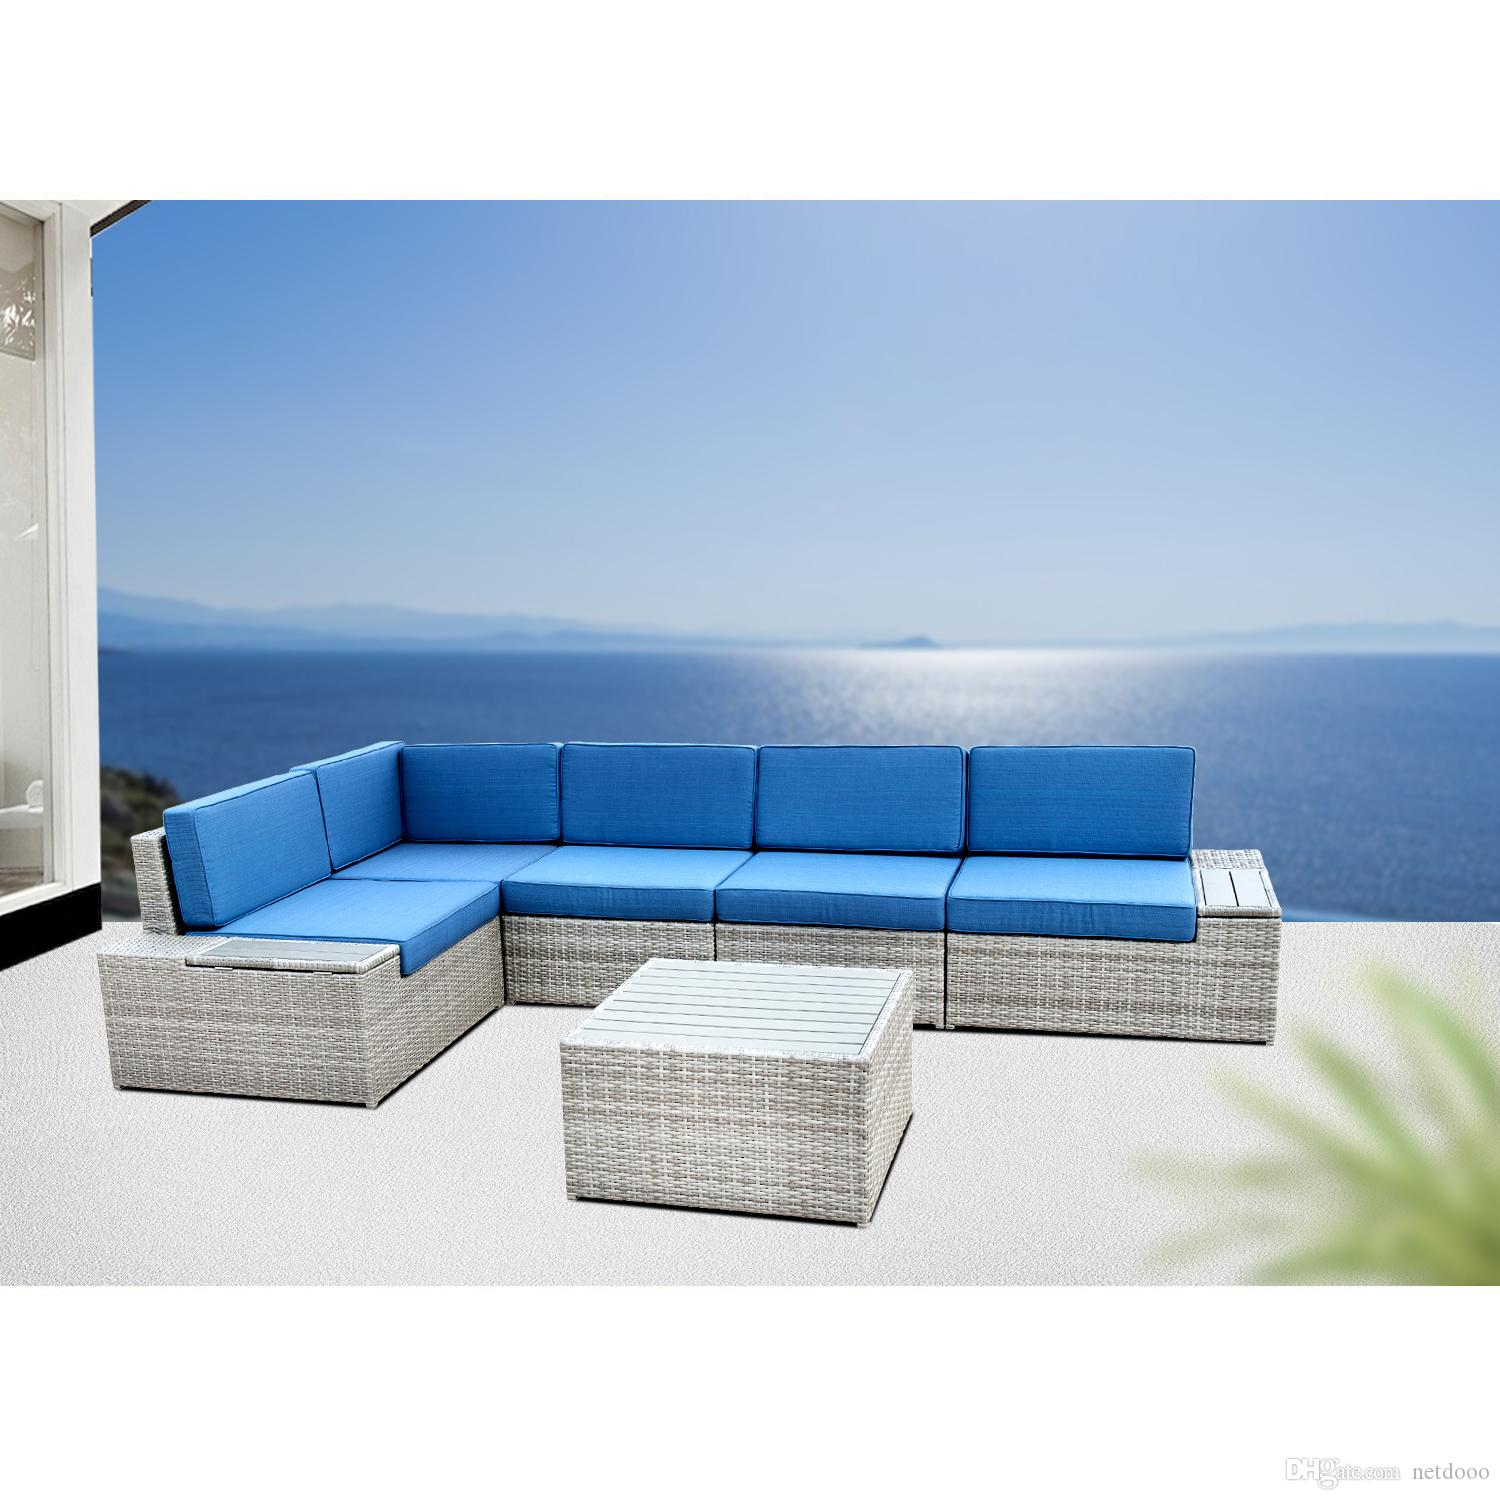 2018 Outdoor Furniture Outdoor Patio Furniture Sectional Sofa Grey Wicker  With Blue Cushions With Ice Can New Design From Netdooo, $1205.03 |  Dhgate.Com